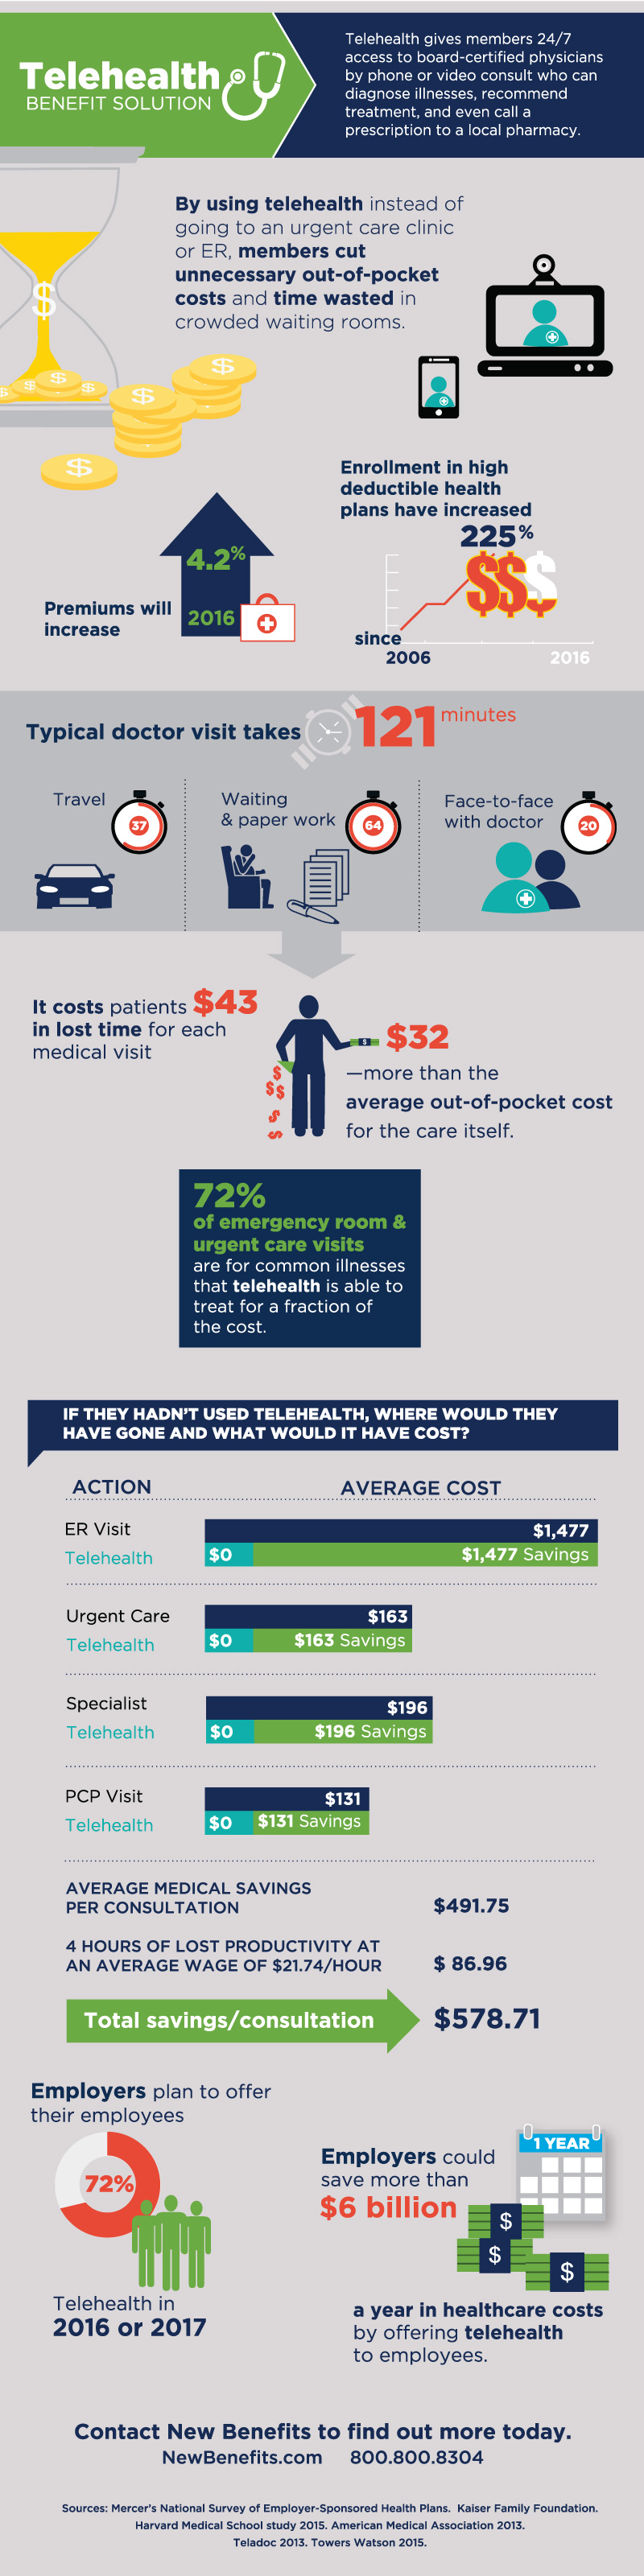 Telehealth-infographic